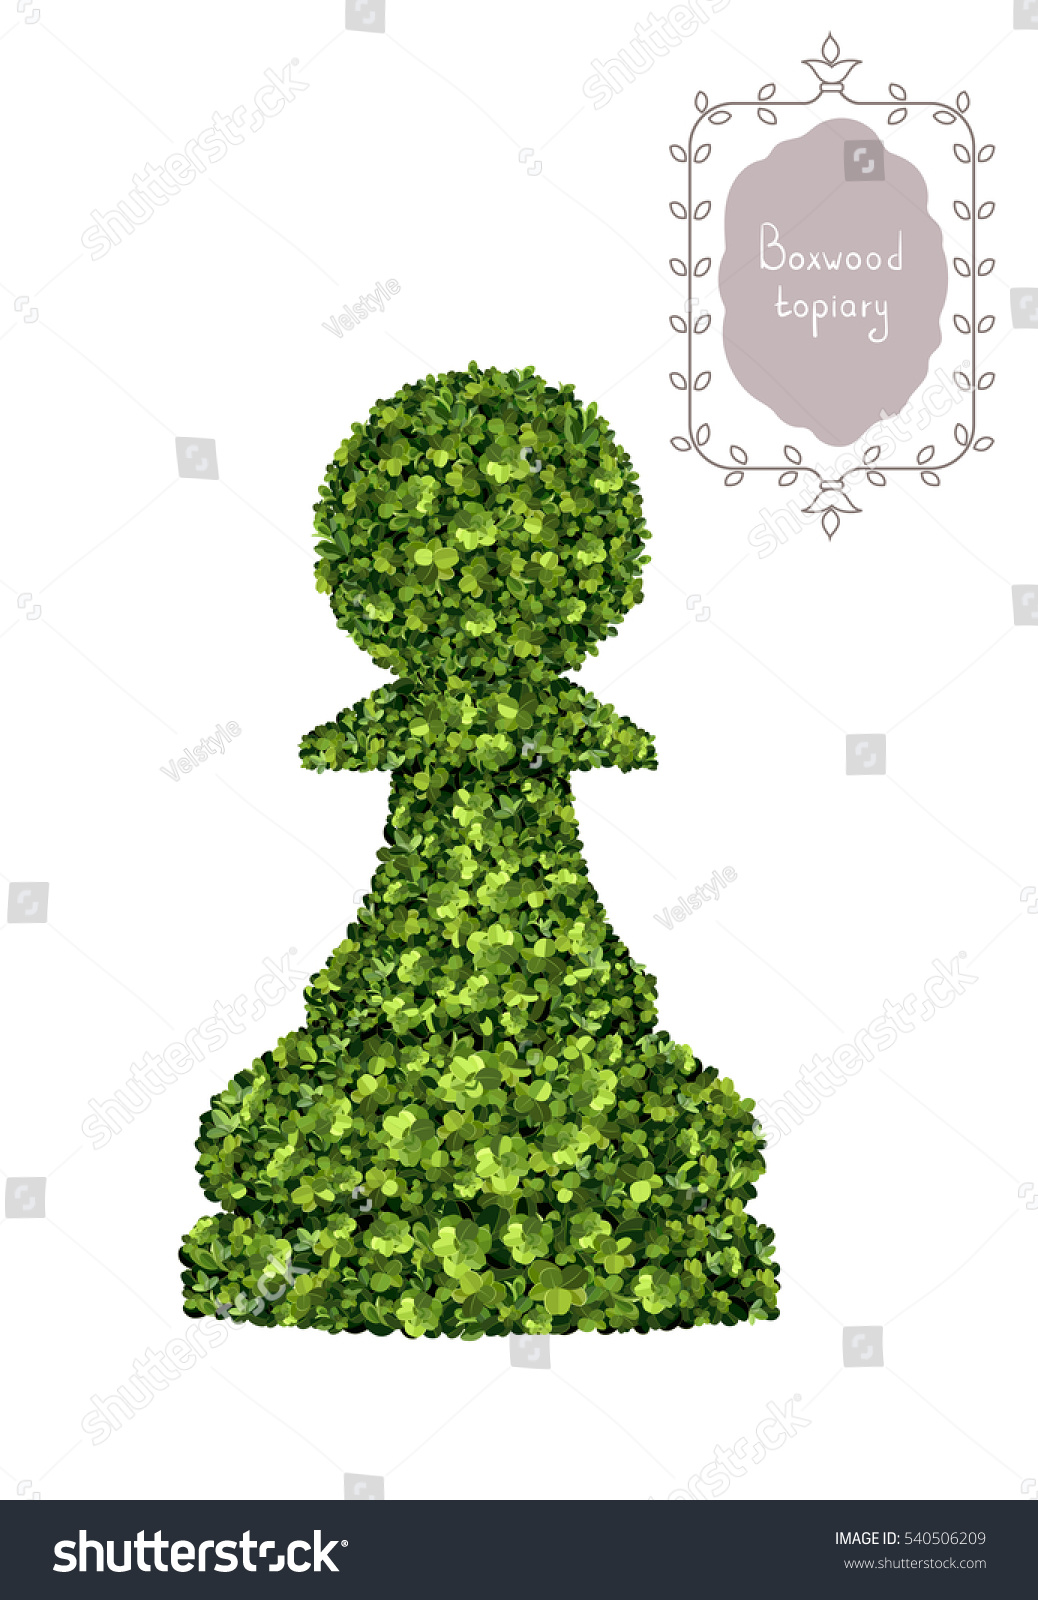 pawn chess piece boxwood topiary garden stock vector 540506209